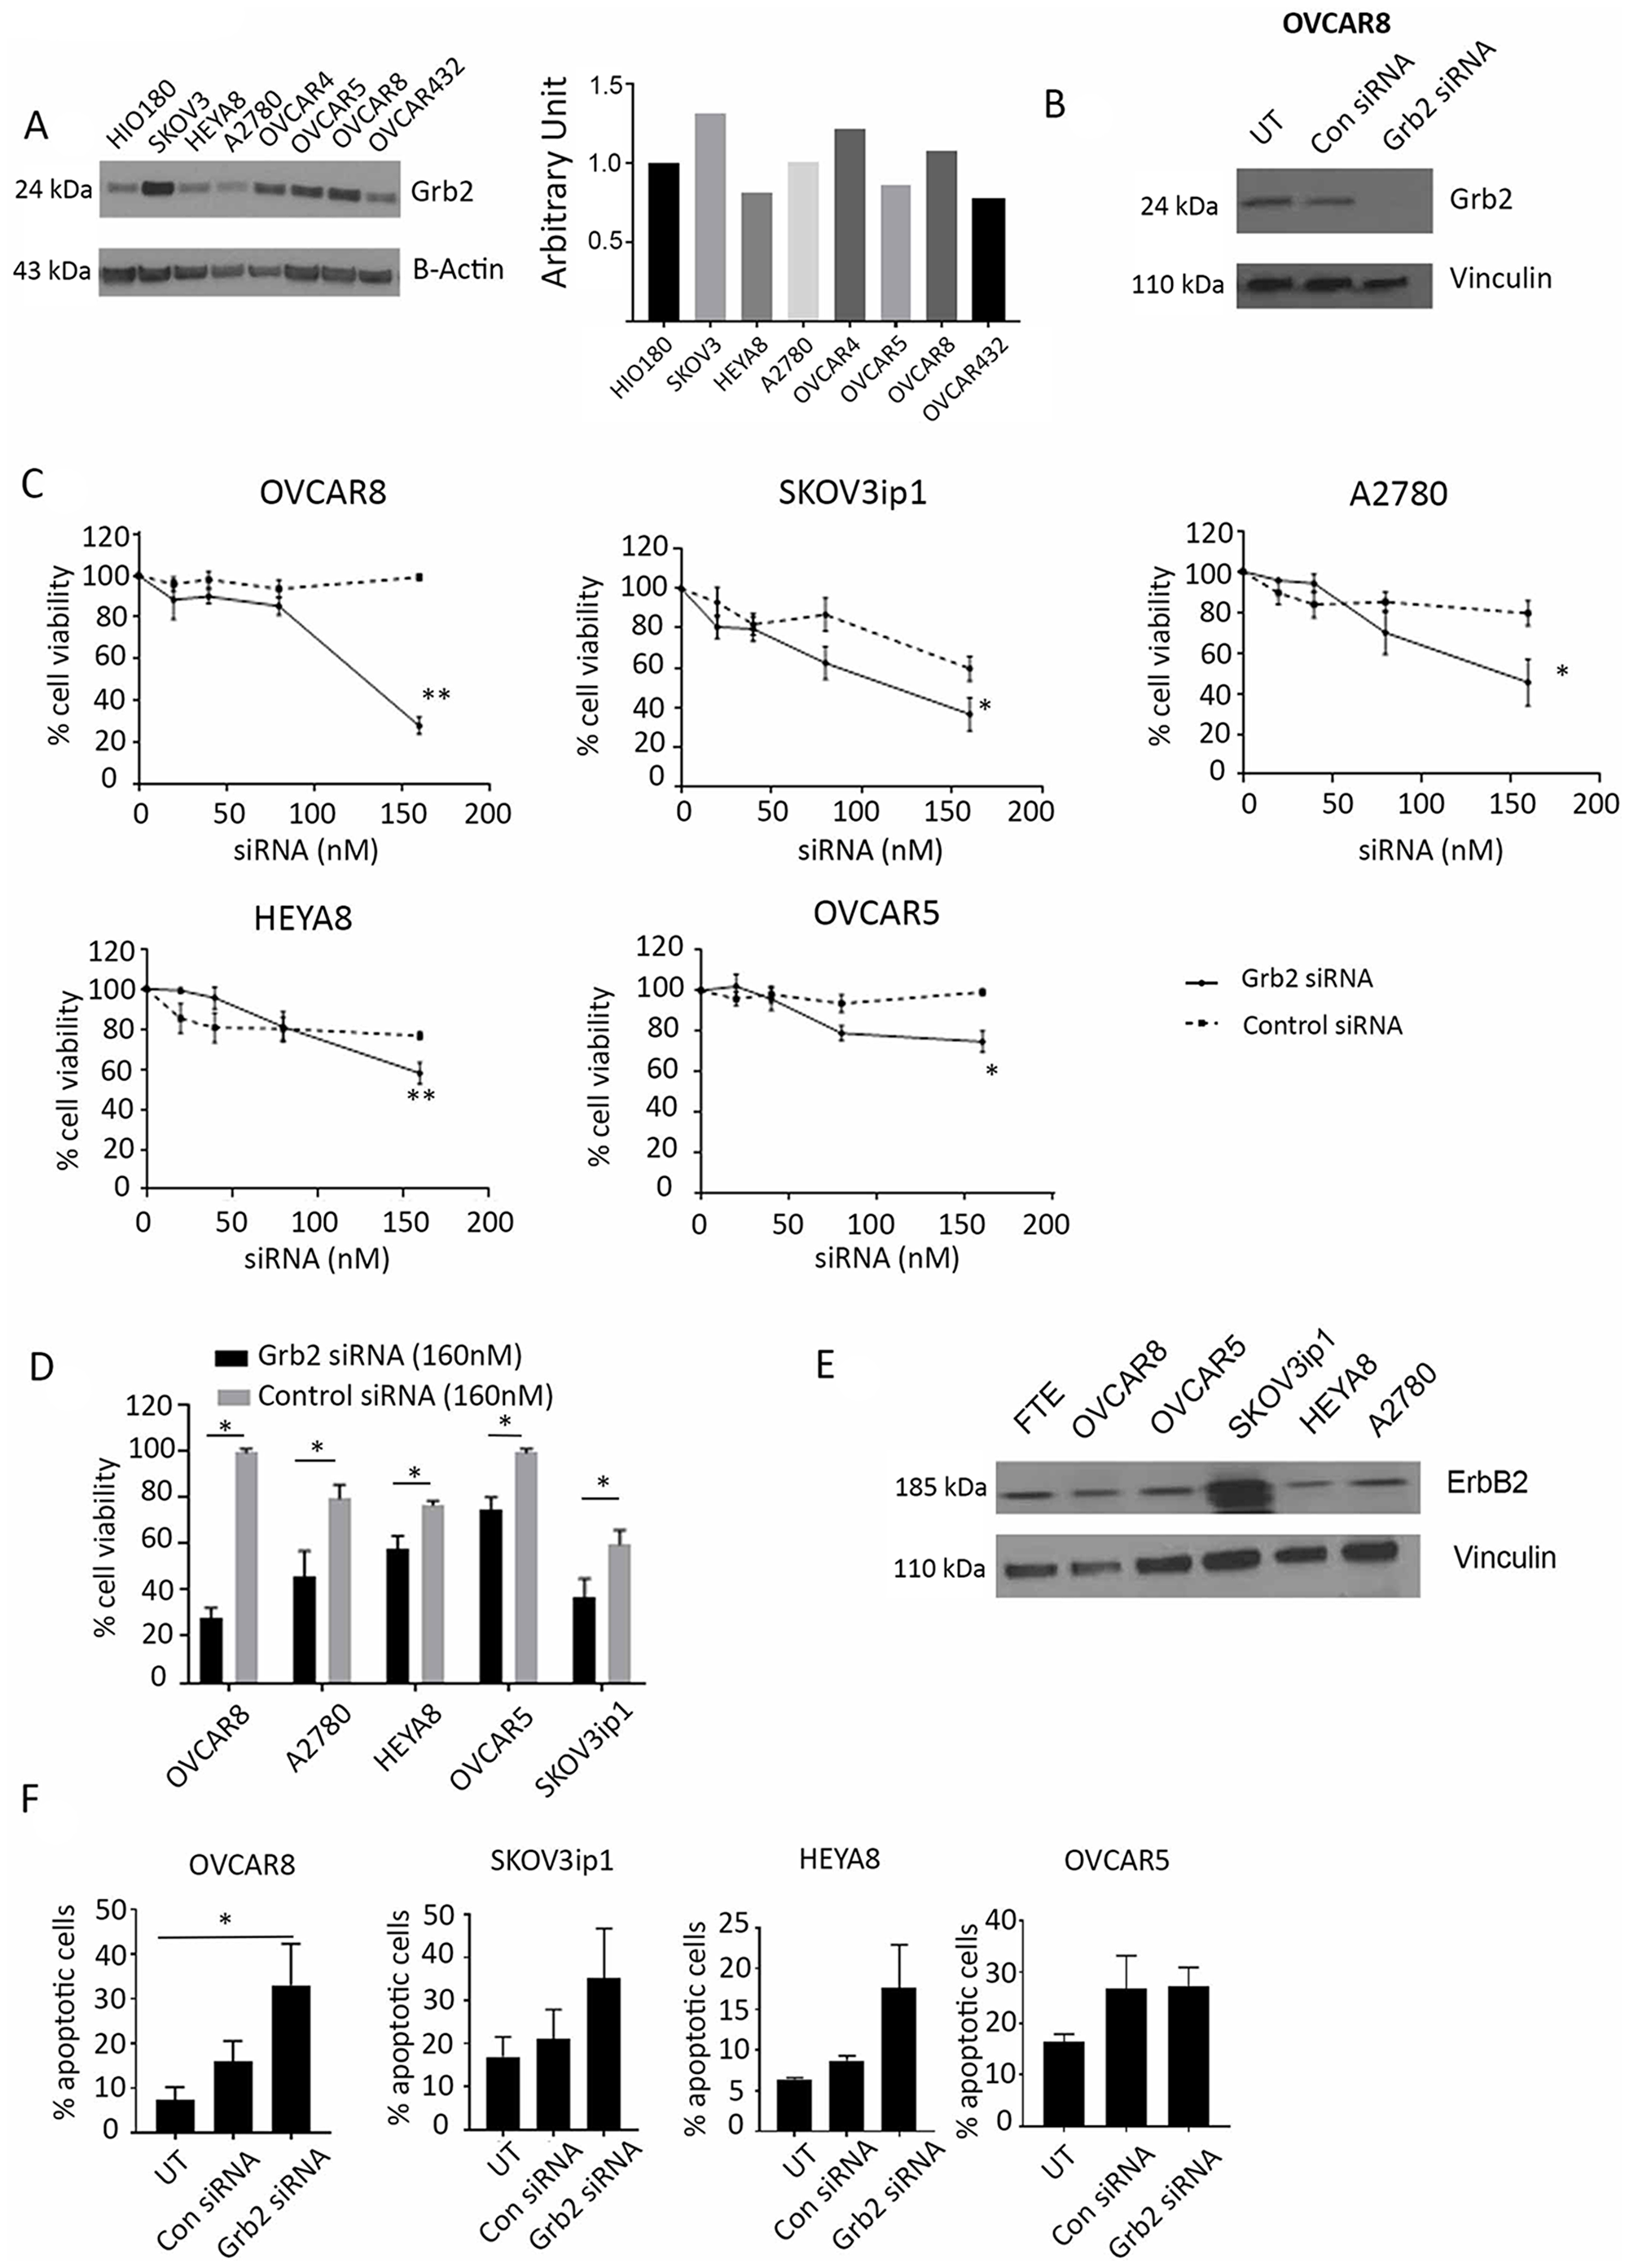 Effect of Grb2 downregulation on ovarian cancer cell lines.